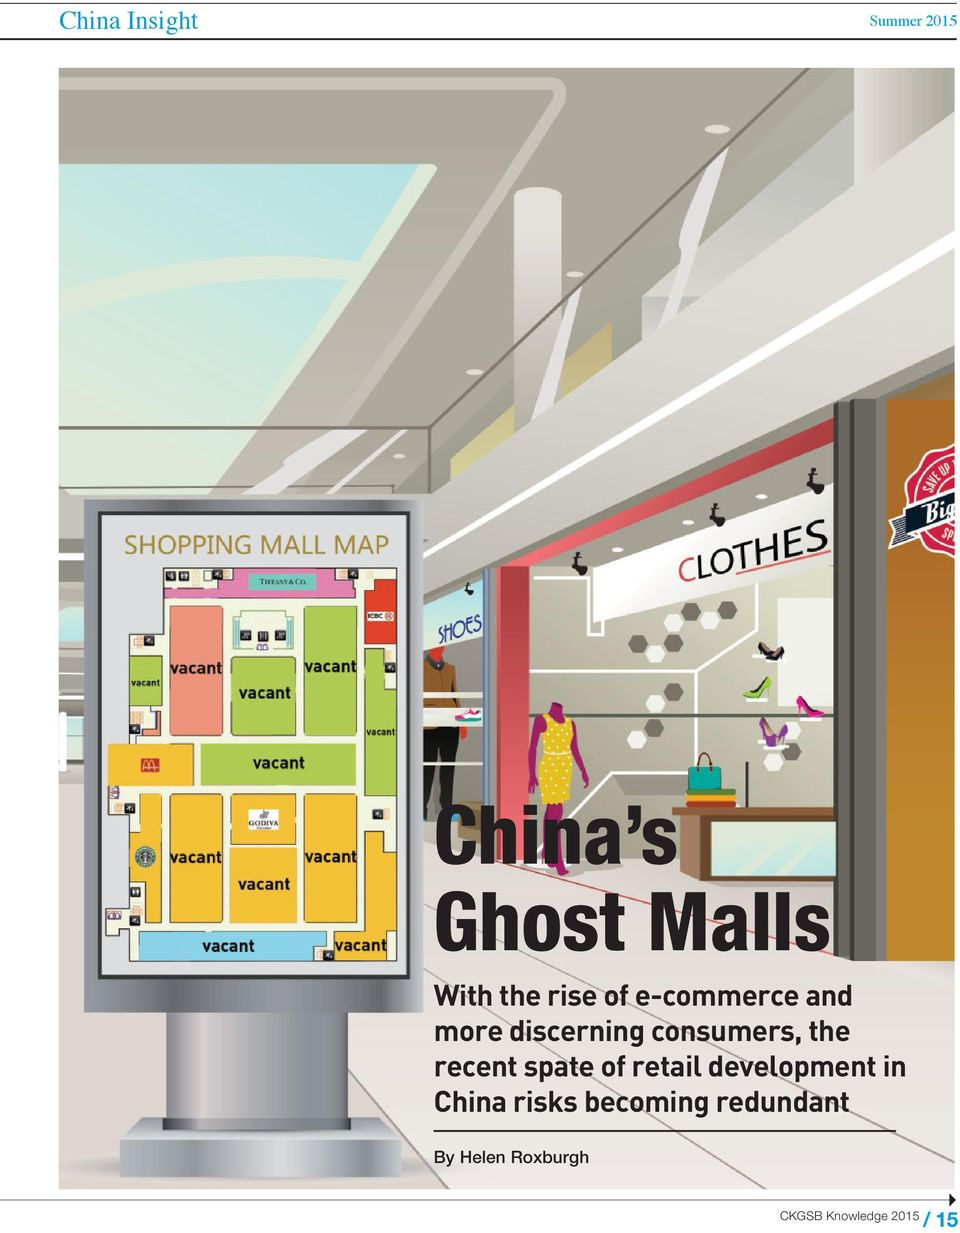 consumers, the recent spate of retail development